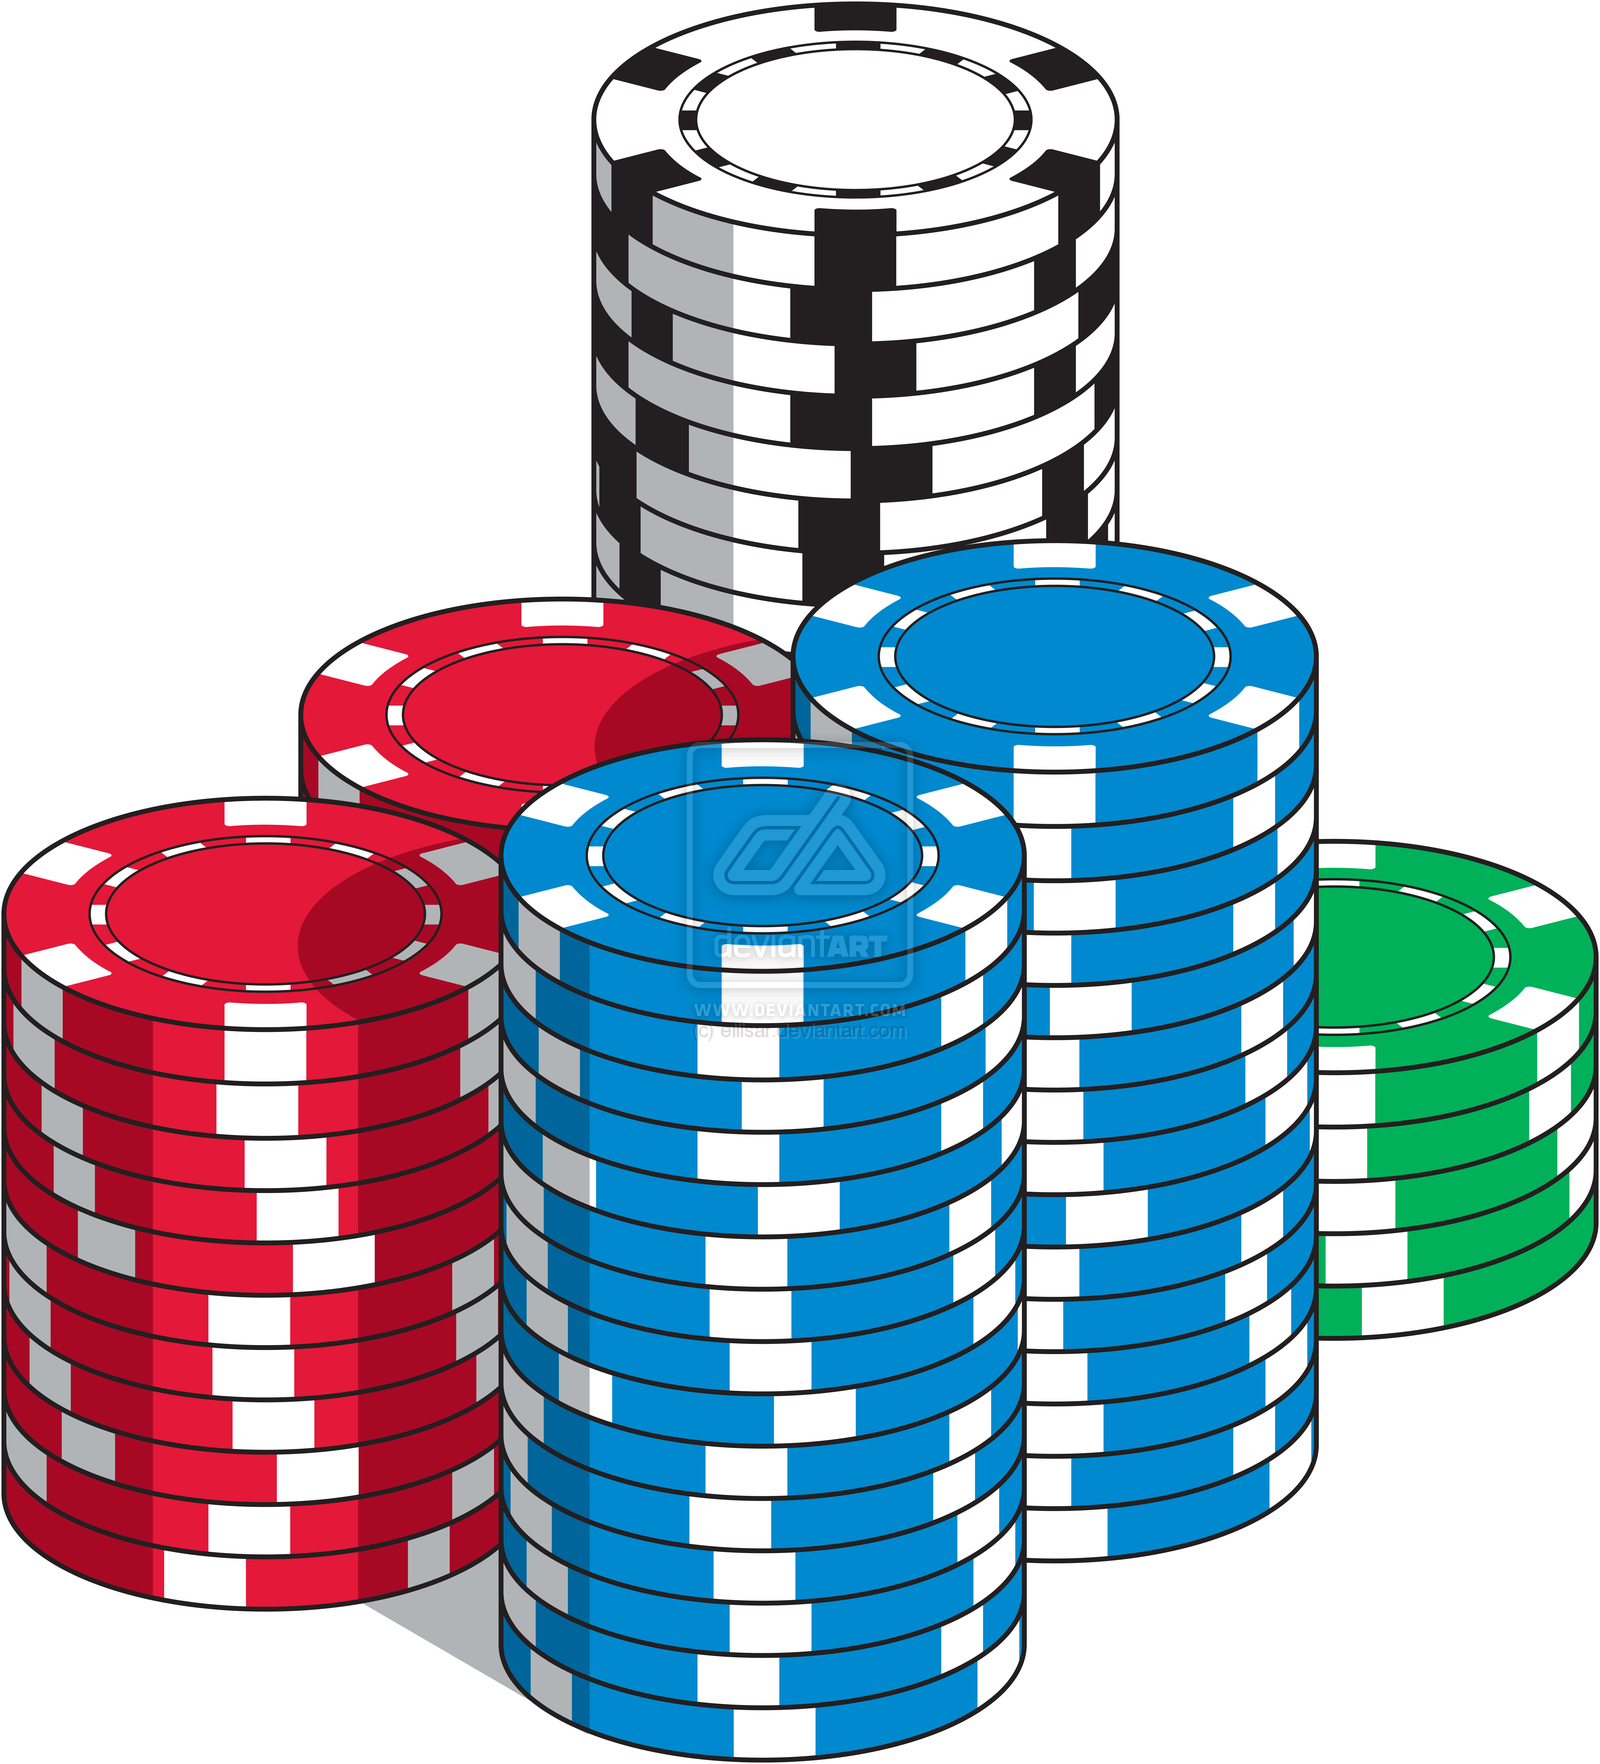 Free Poker Chip Png, Download Free Clip Art, Free Clip Art.